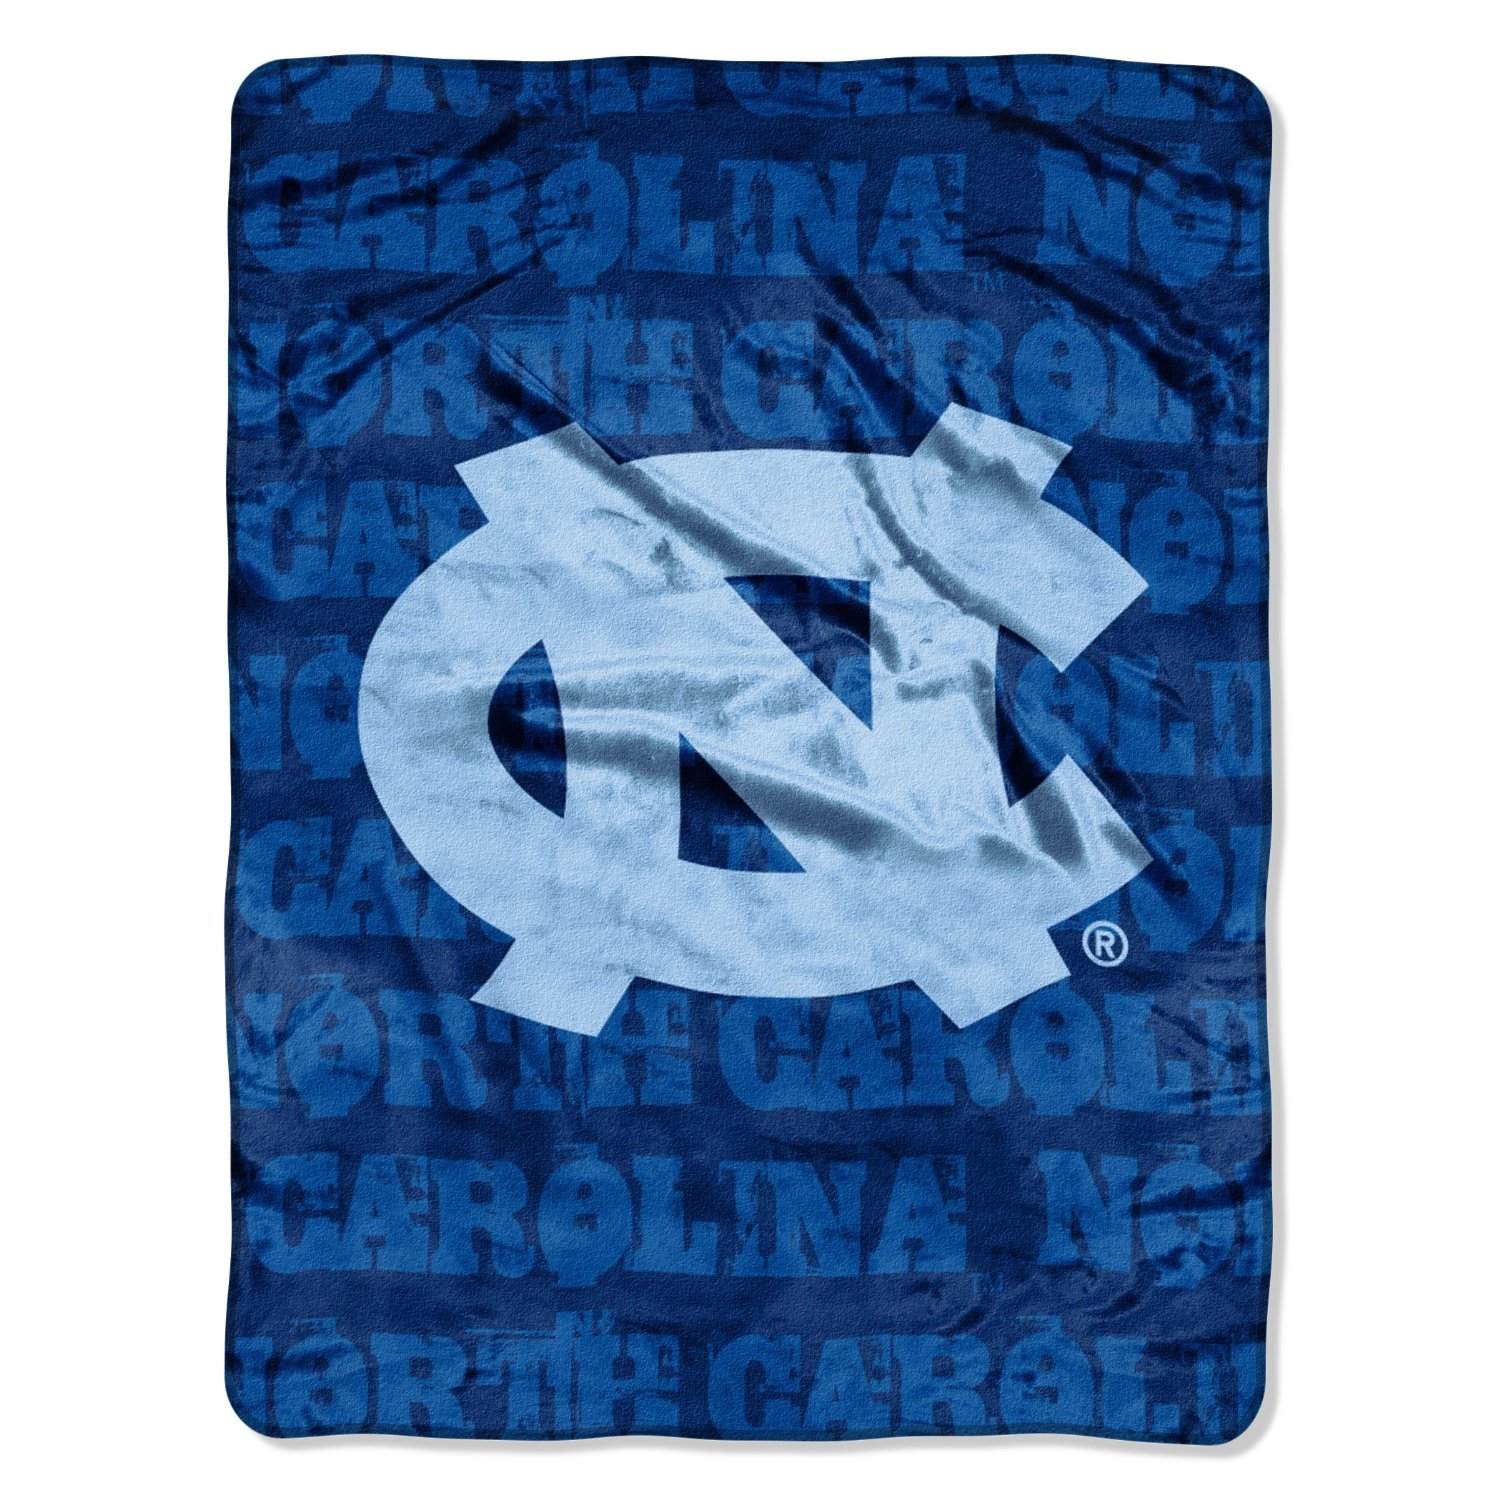 North Carolina Tar Heels 46x60 Grunge Design Micro Raschel Plush Throw